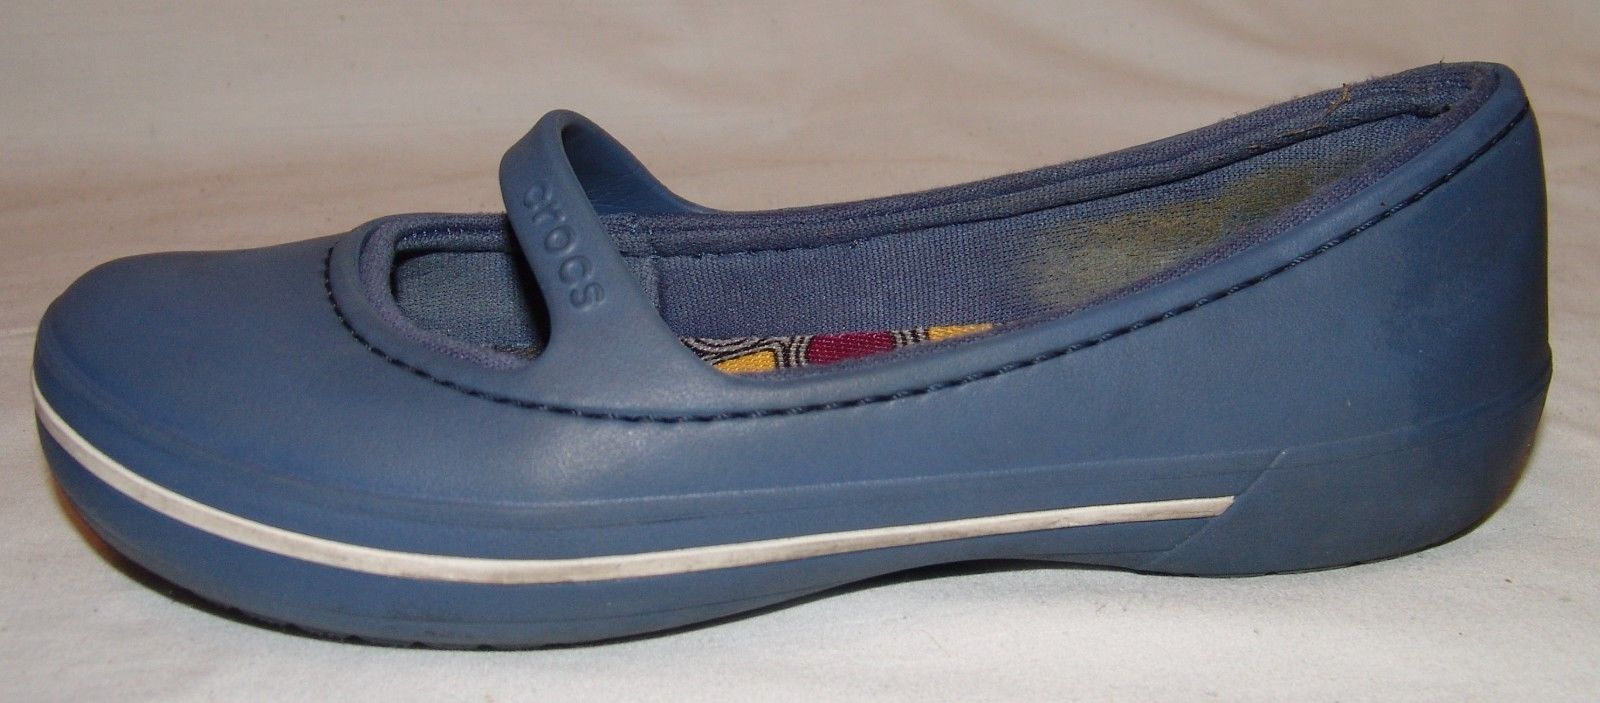 6c6375dfaadc0d Crocs Womens Blue Slip On Shoes 6 Mary Jane and 50 similar items